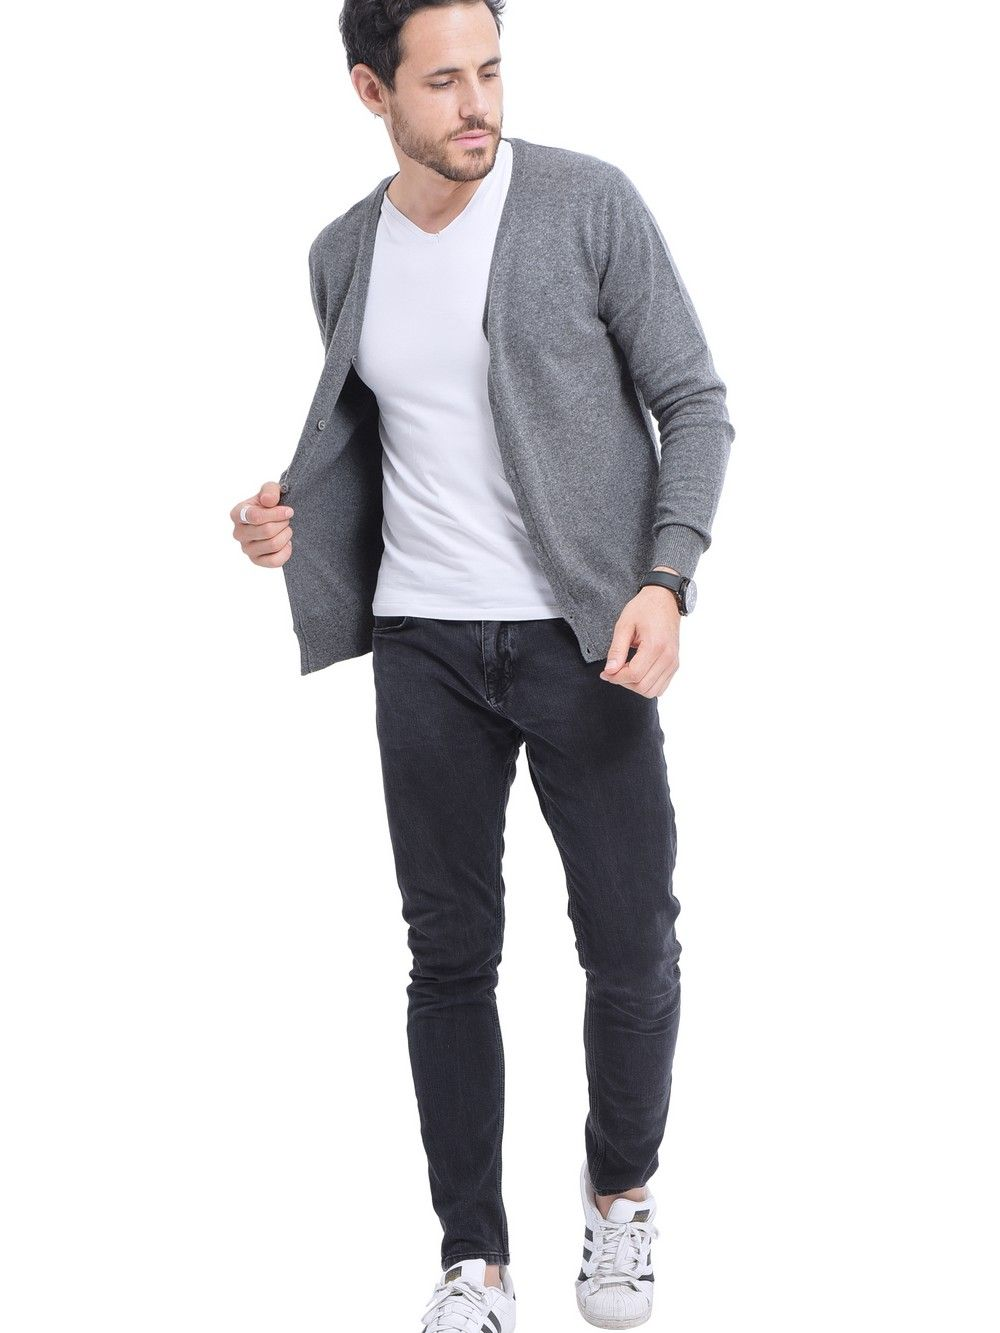 C&JO V-neck Buttoned Cardigan in Grey